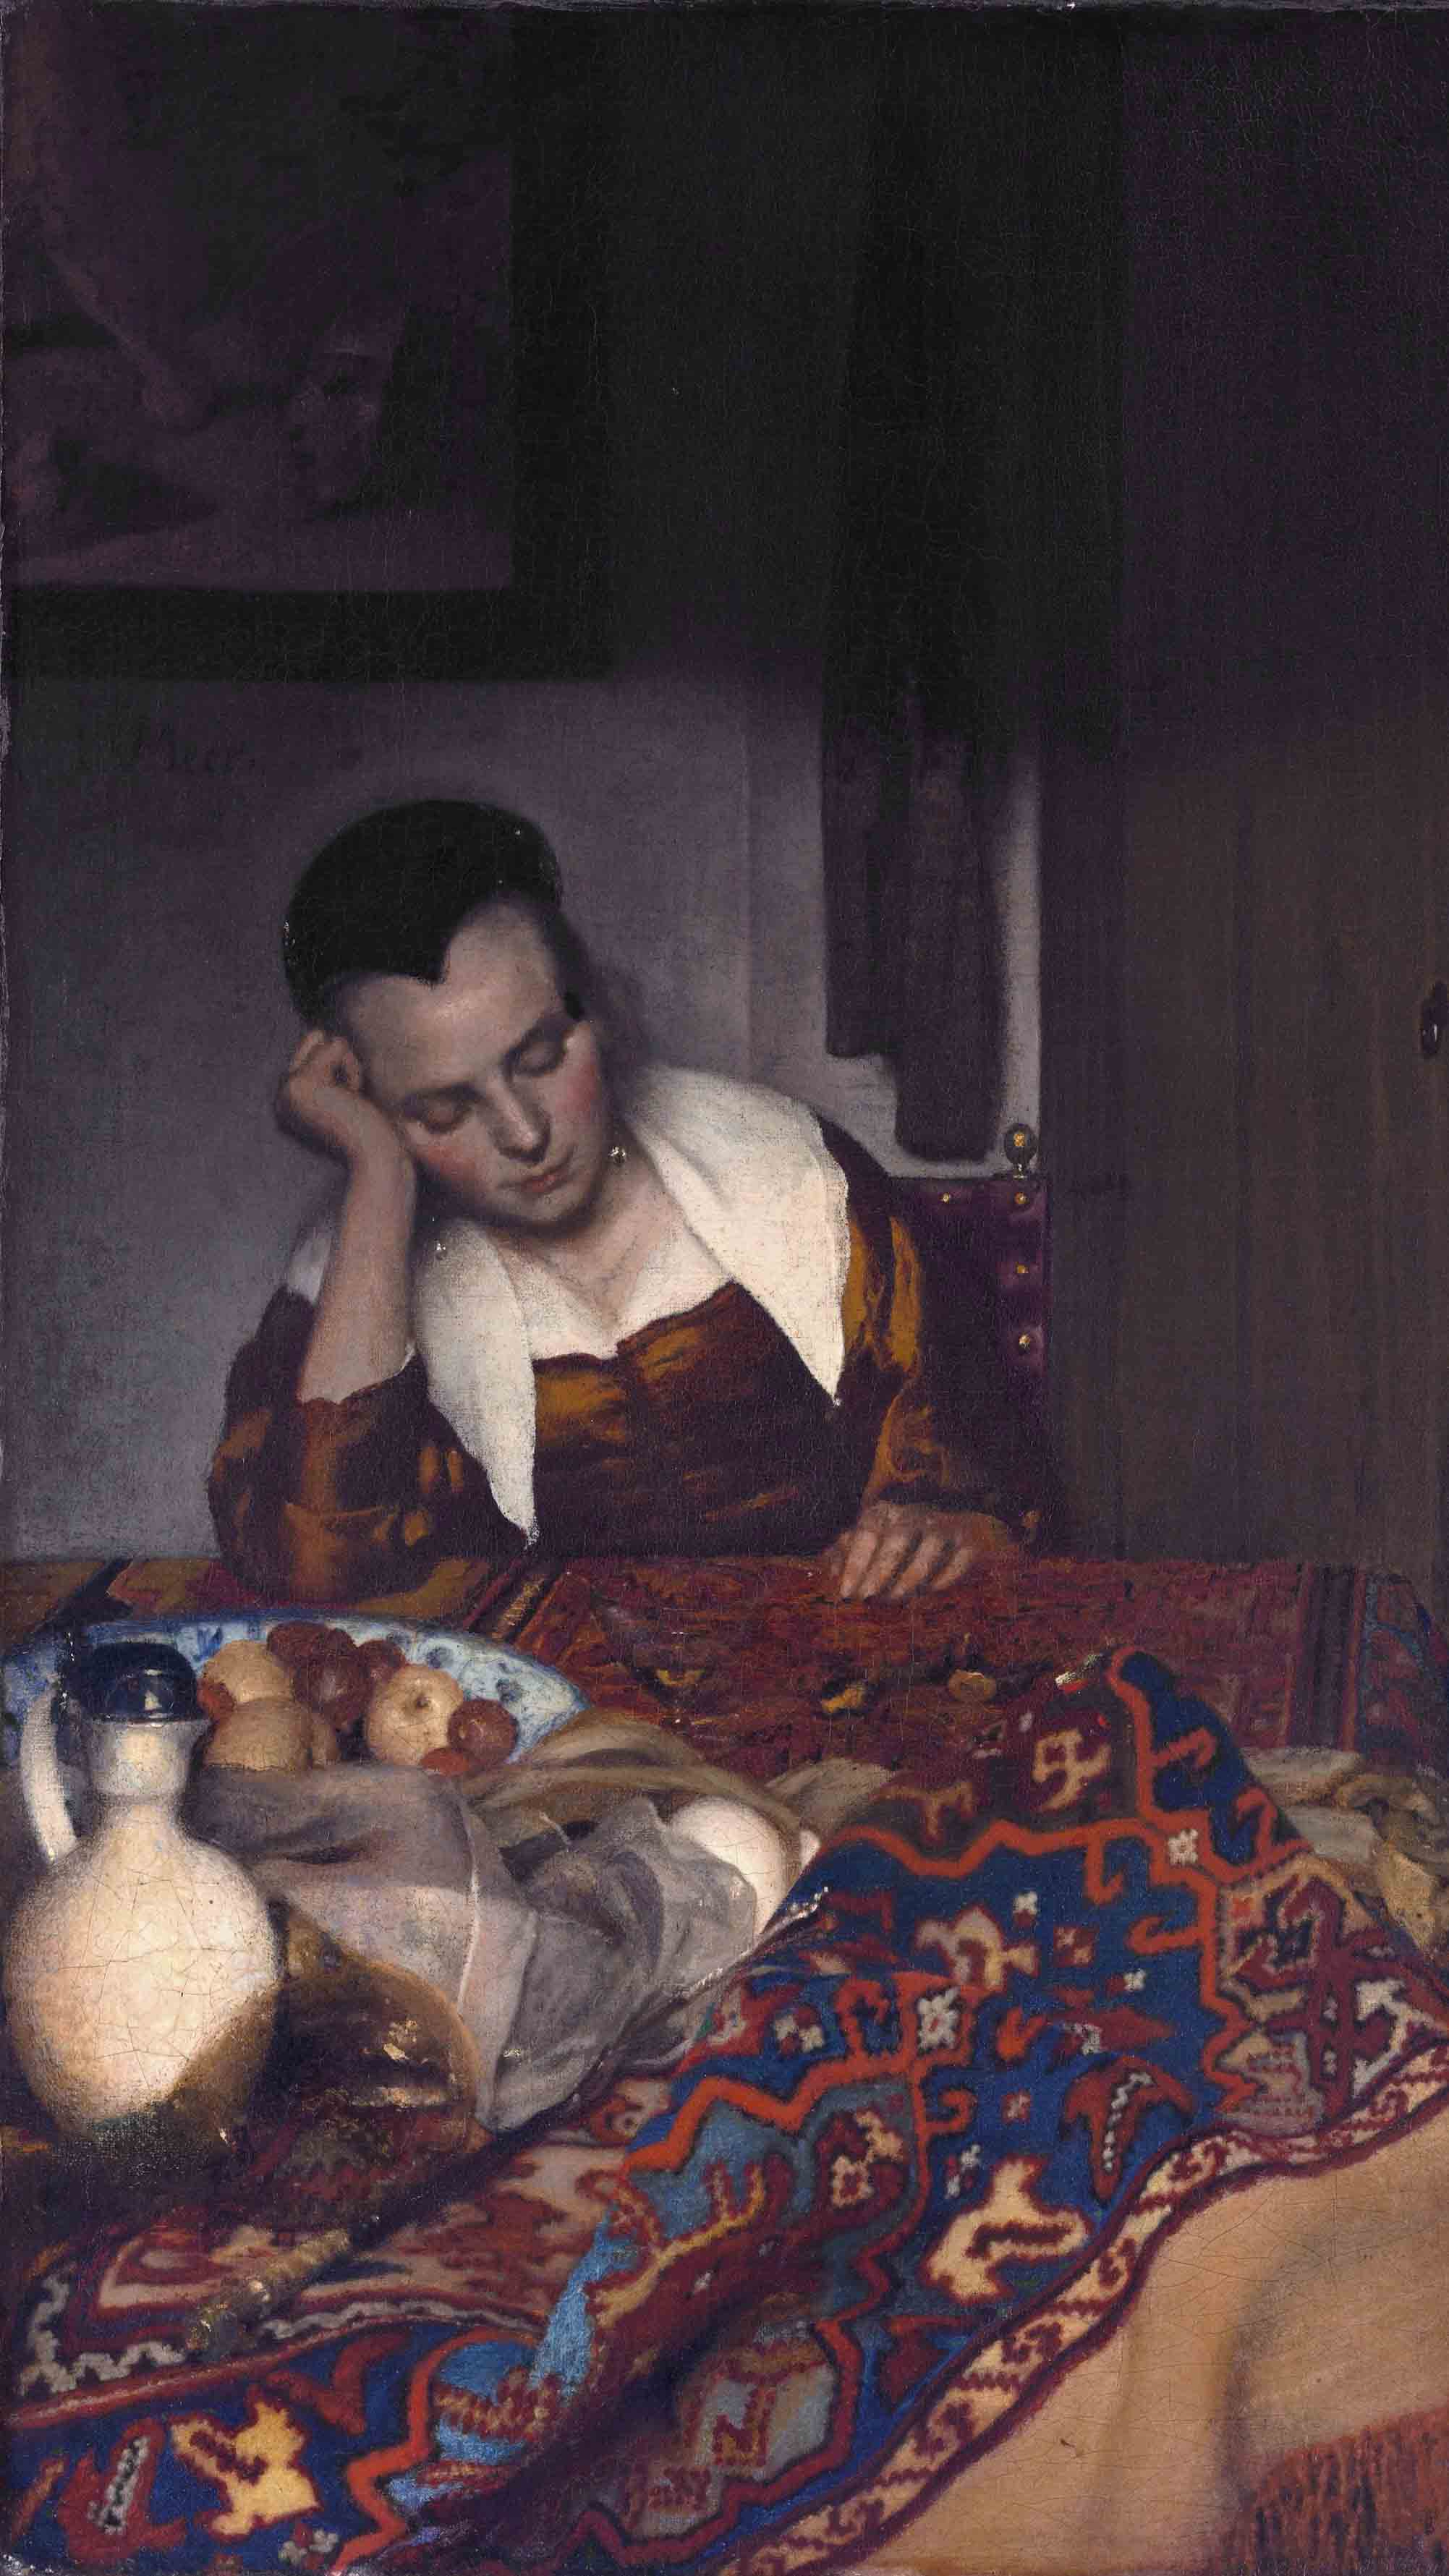 http://cinegrafix.eu/wp-content/uploads/2017/02/20121117-Vermeer_young_women_sleeping-21.jpg